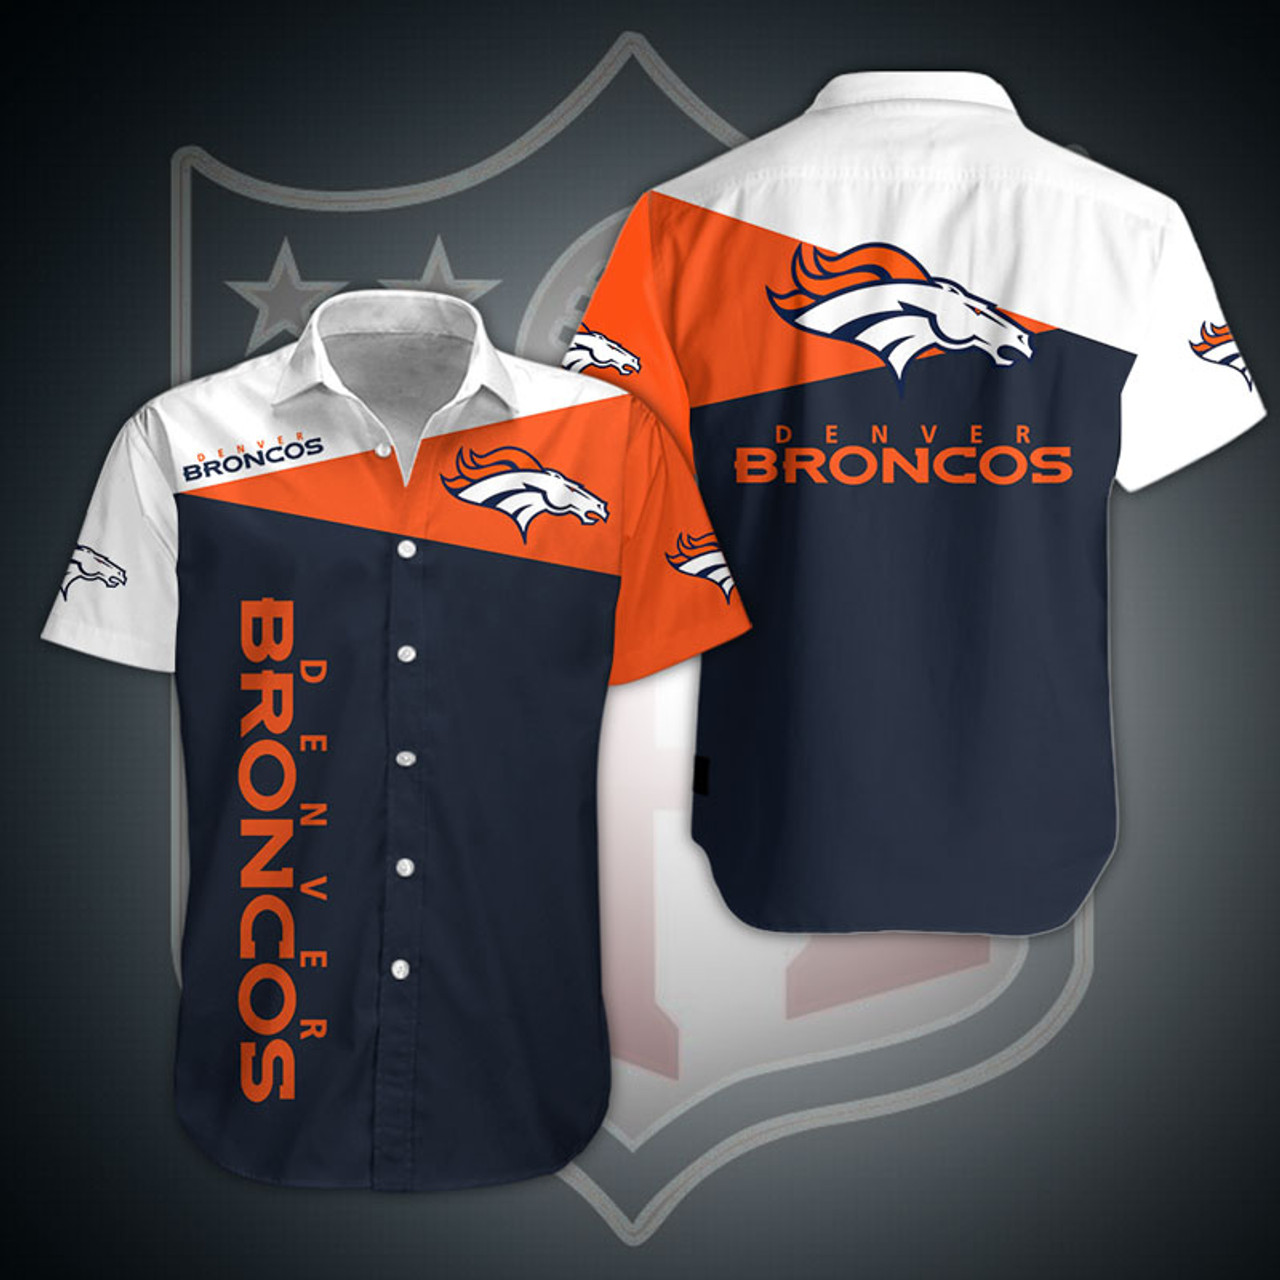 **(OFFICIAL-N.F.L.DENVER-BRONCOS-FASHION-BUTTON-FRONT-SPORT-SHIRTS/CUSTOM-3D-GRAPHIC-PRINTED-DETAILED-DOUBLE-SIDED-ALL-OVER/CLASSIC-OFFICIAL-BRONCOS-LOGOS & OFFICIAL-BRONCOS-TEAM-COLORS/PREMIUM-OFFICIAL-N.F.L.BRONCOS-TEAM-BUTTON-FRONT-SPORT-SHIRTS)**